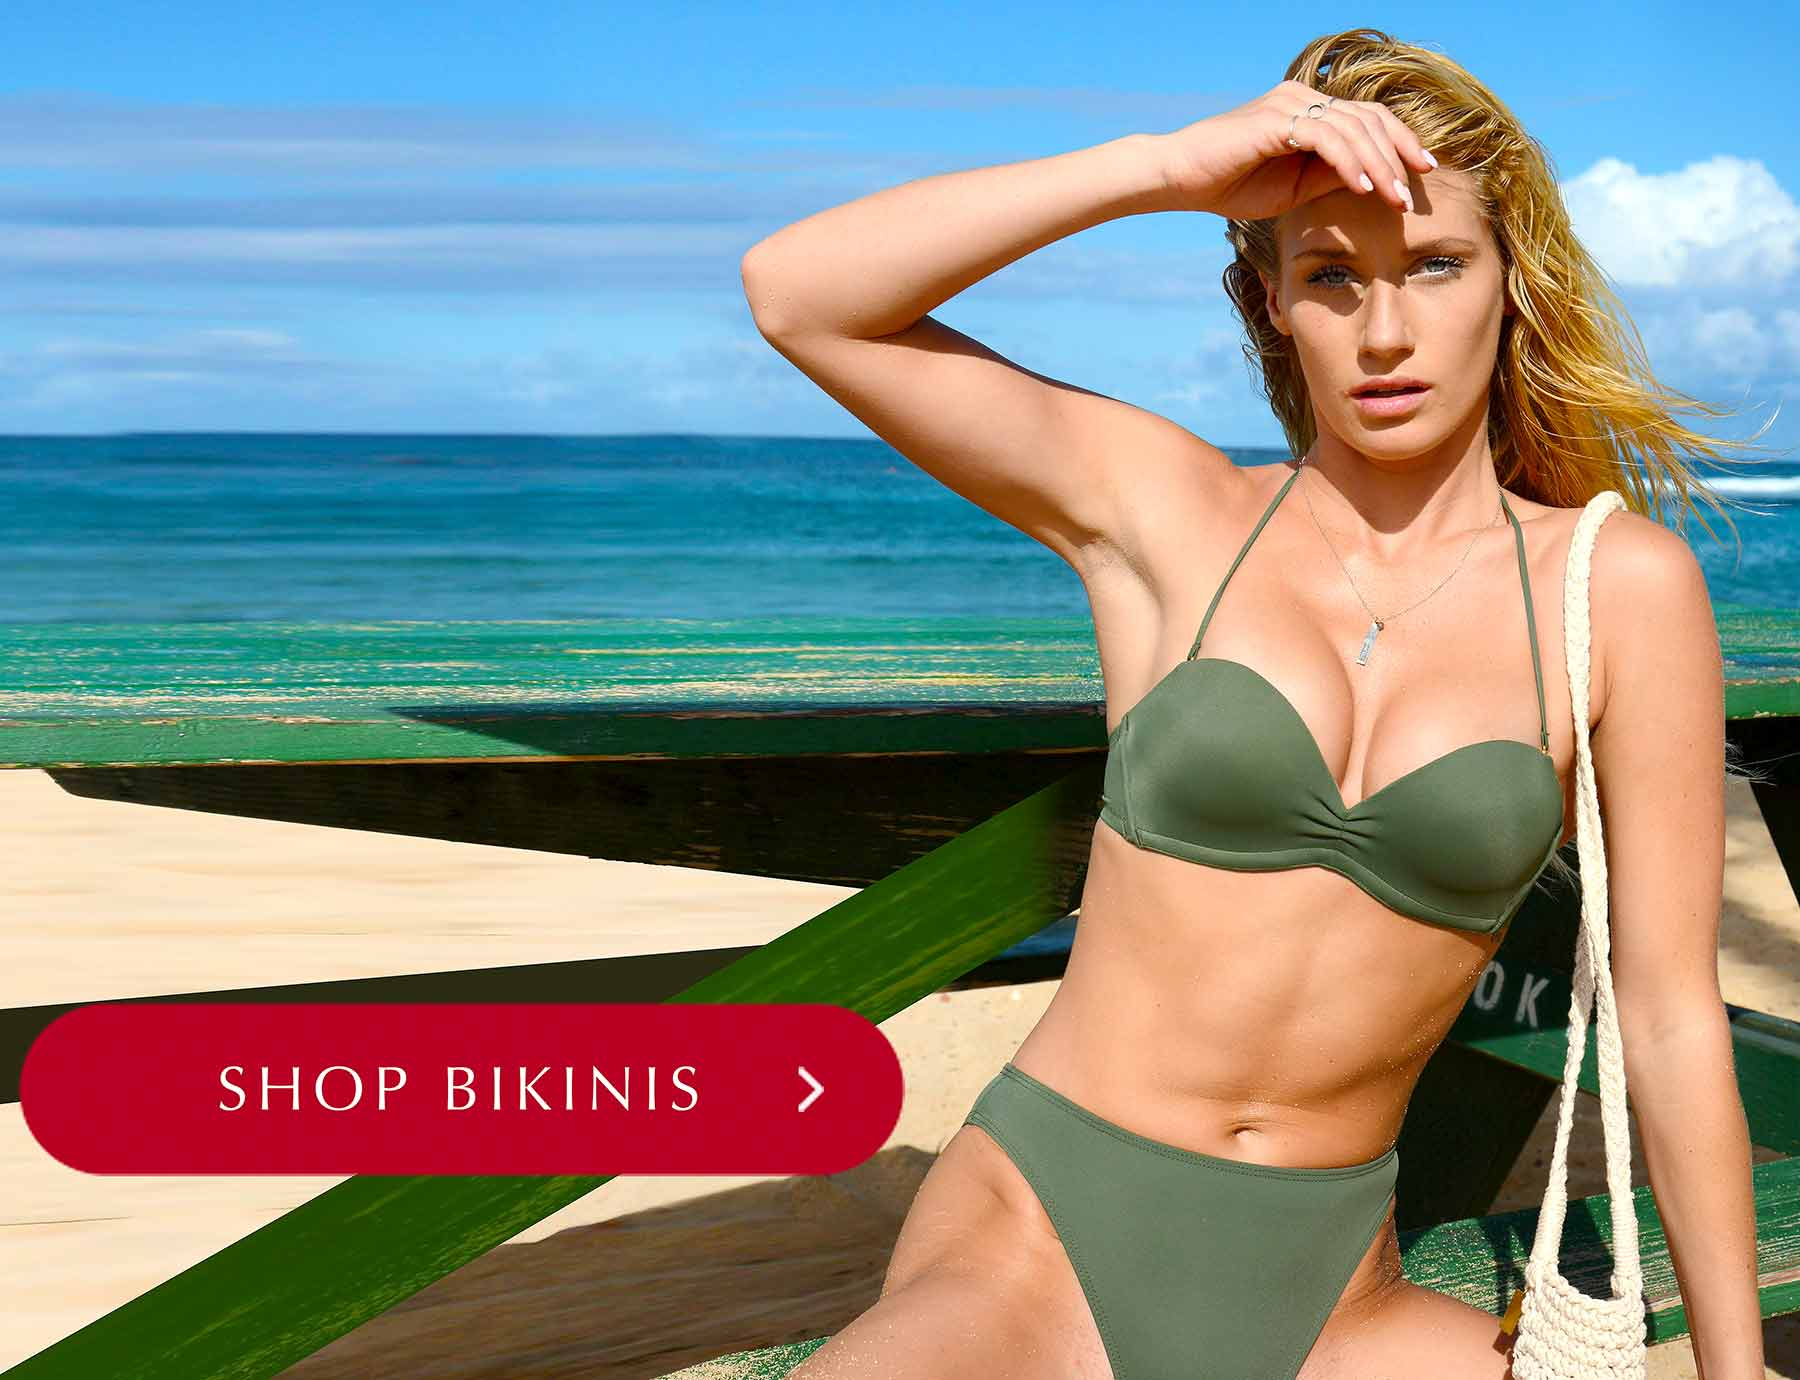 A new type of bikini top. Maximum controllable cleavage and lift from Upbra (olive bikini shown here)